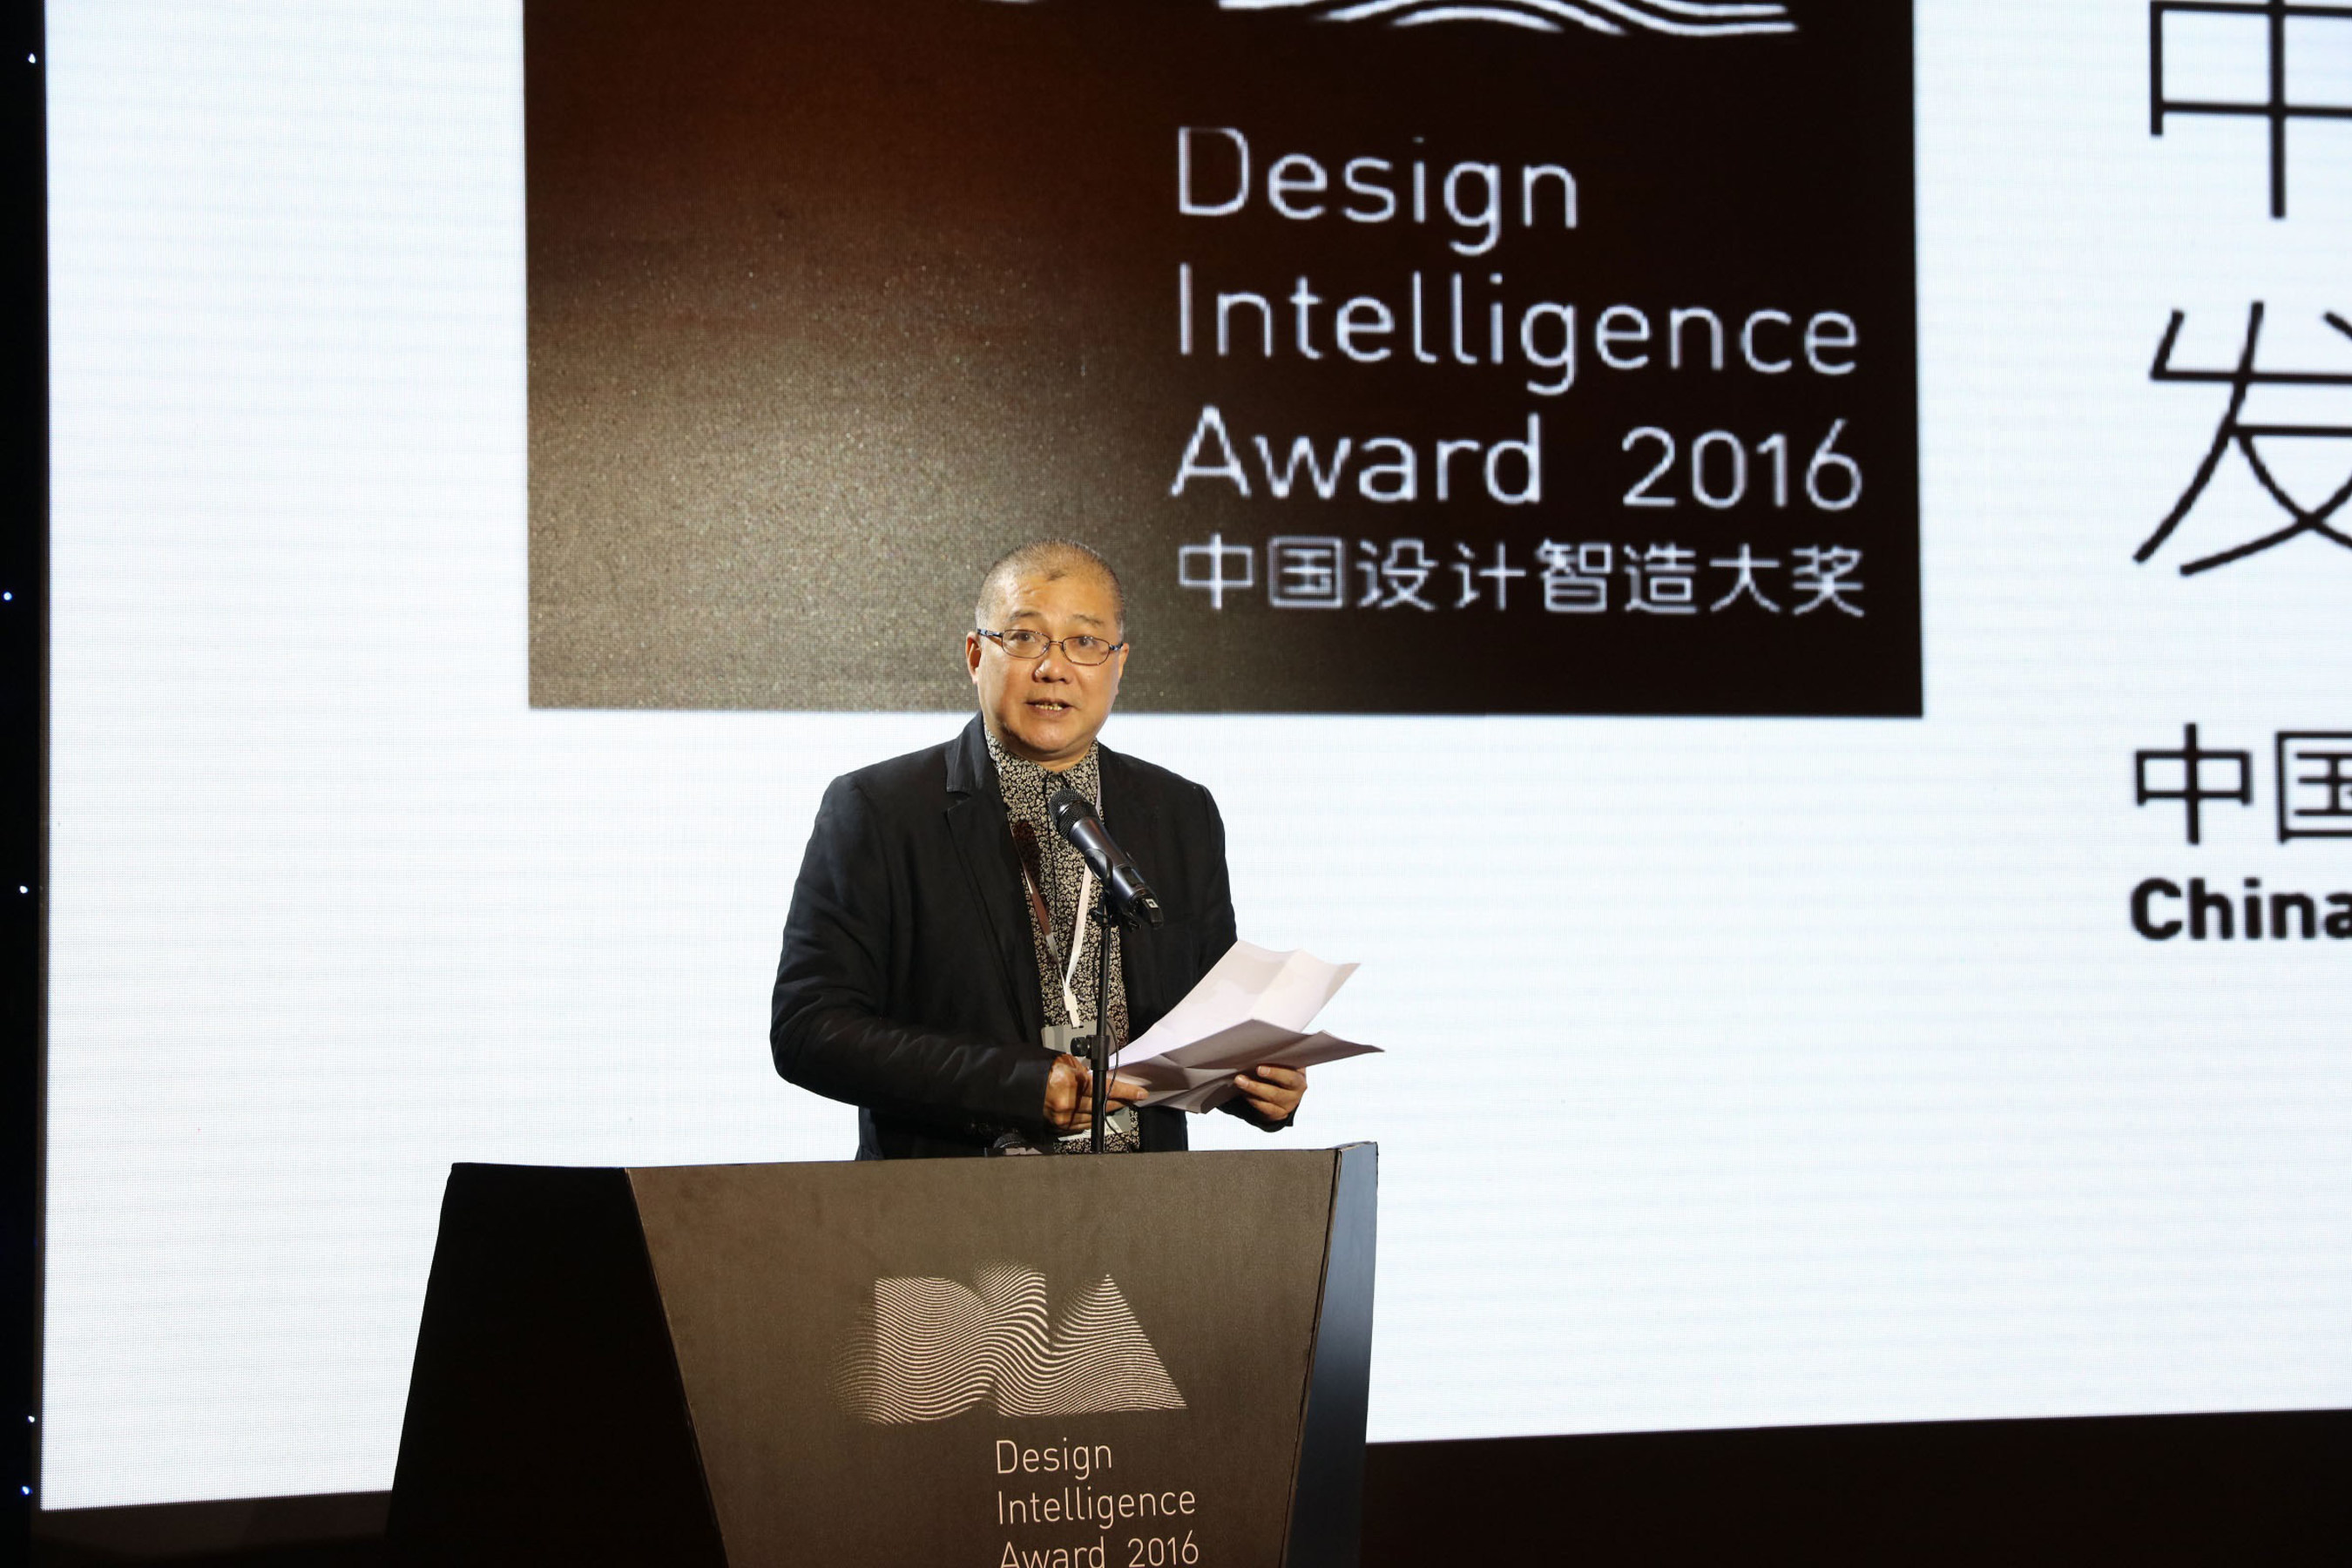 The president of the China Academy of Art delivering a speech